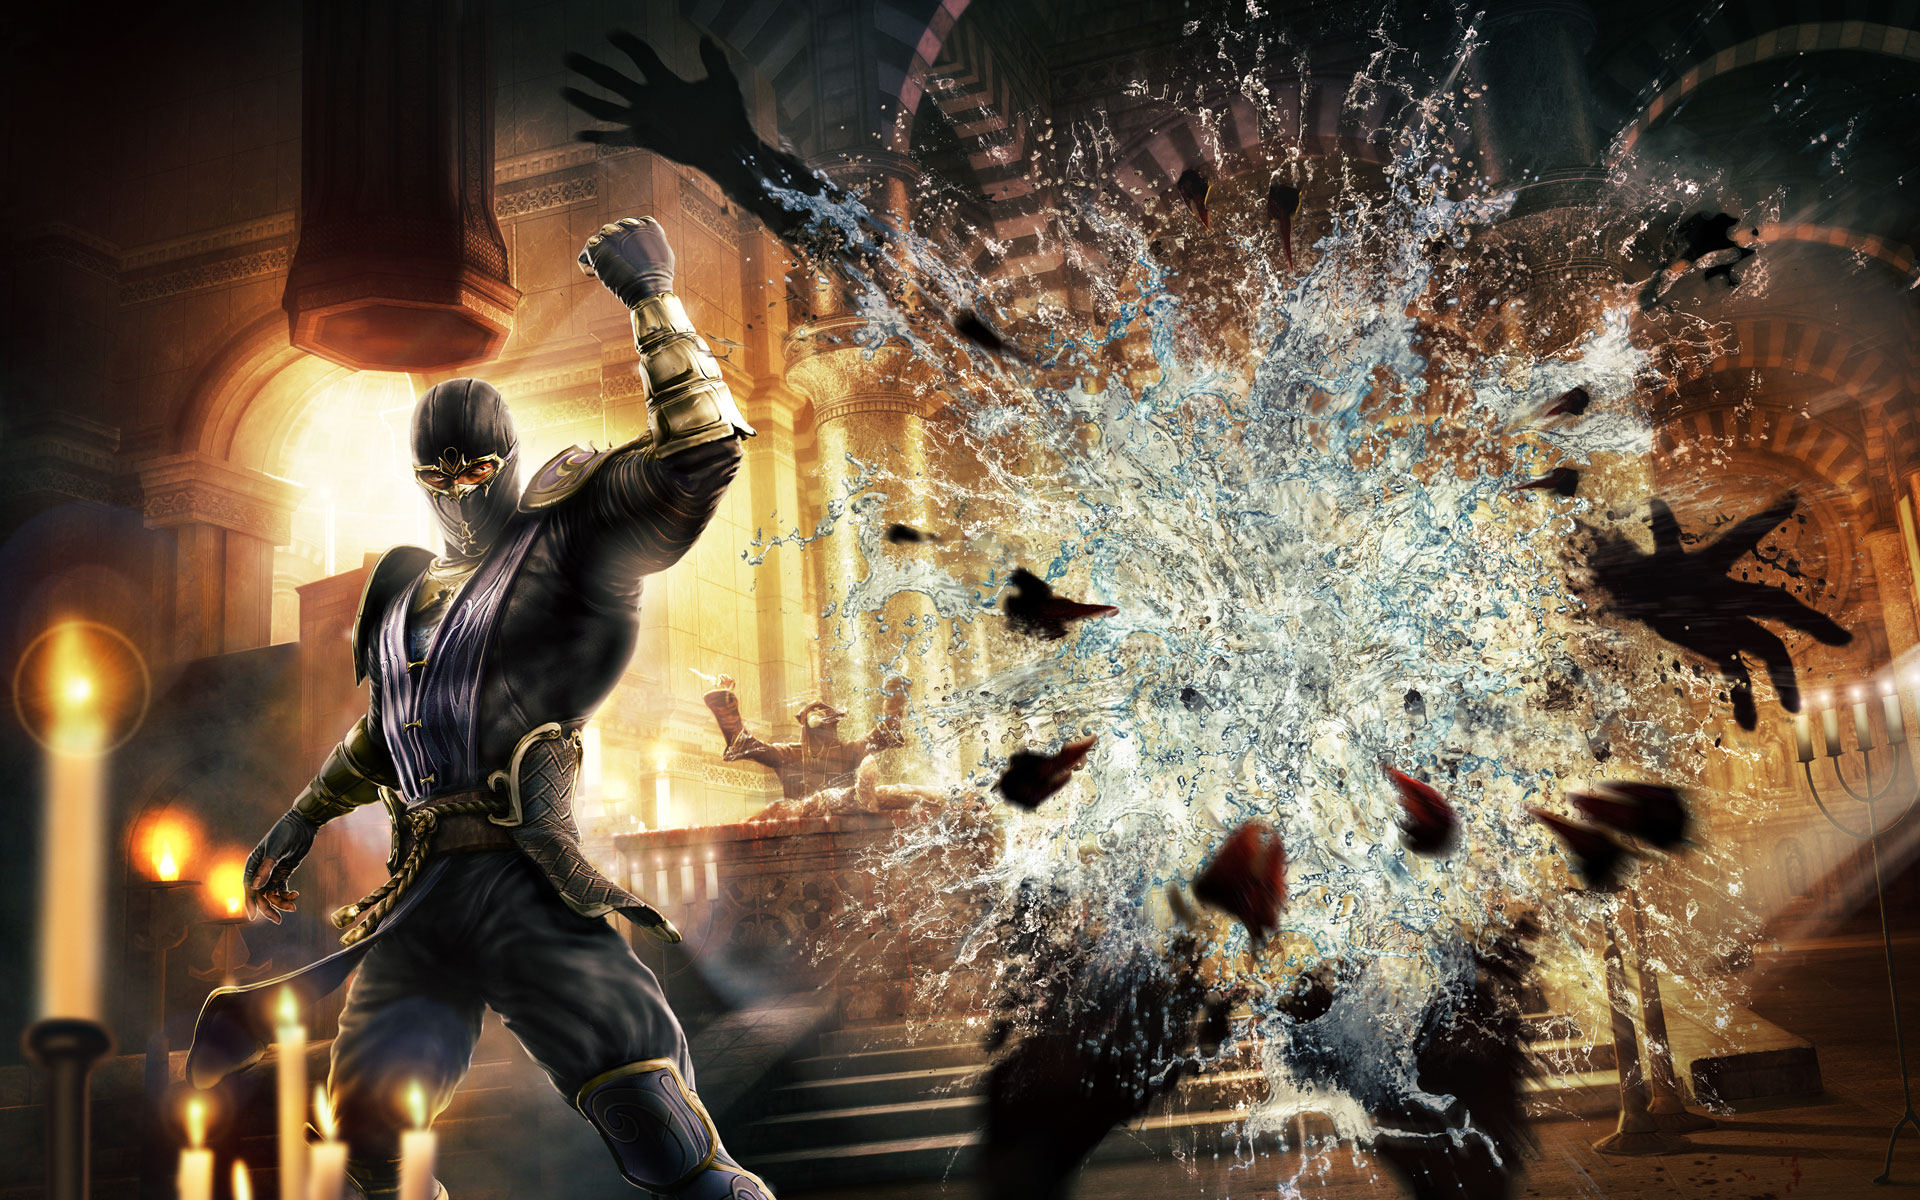 mortal kombat 9 wallpapers - sf wallpaper